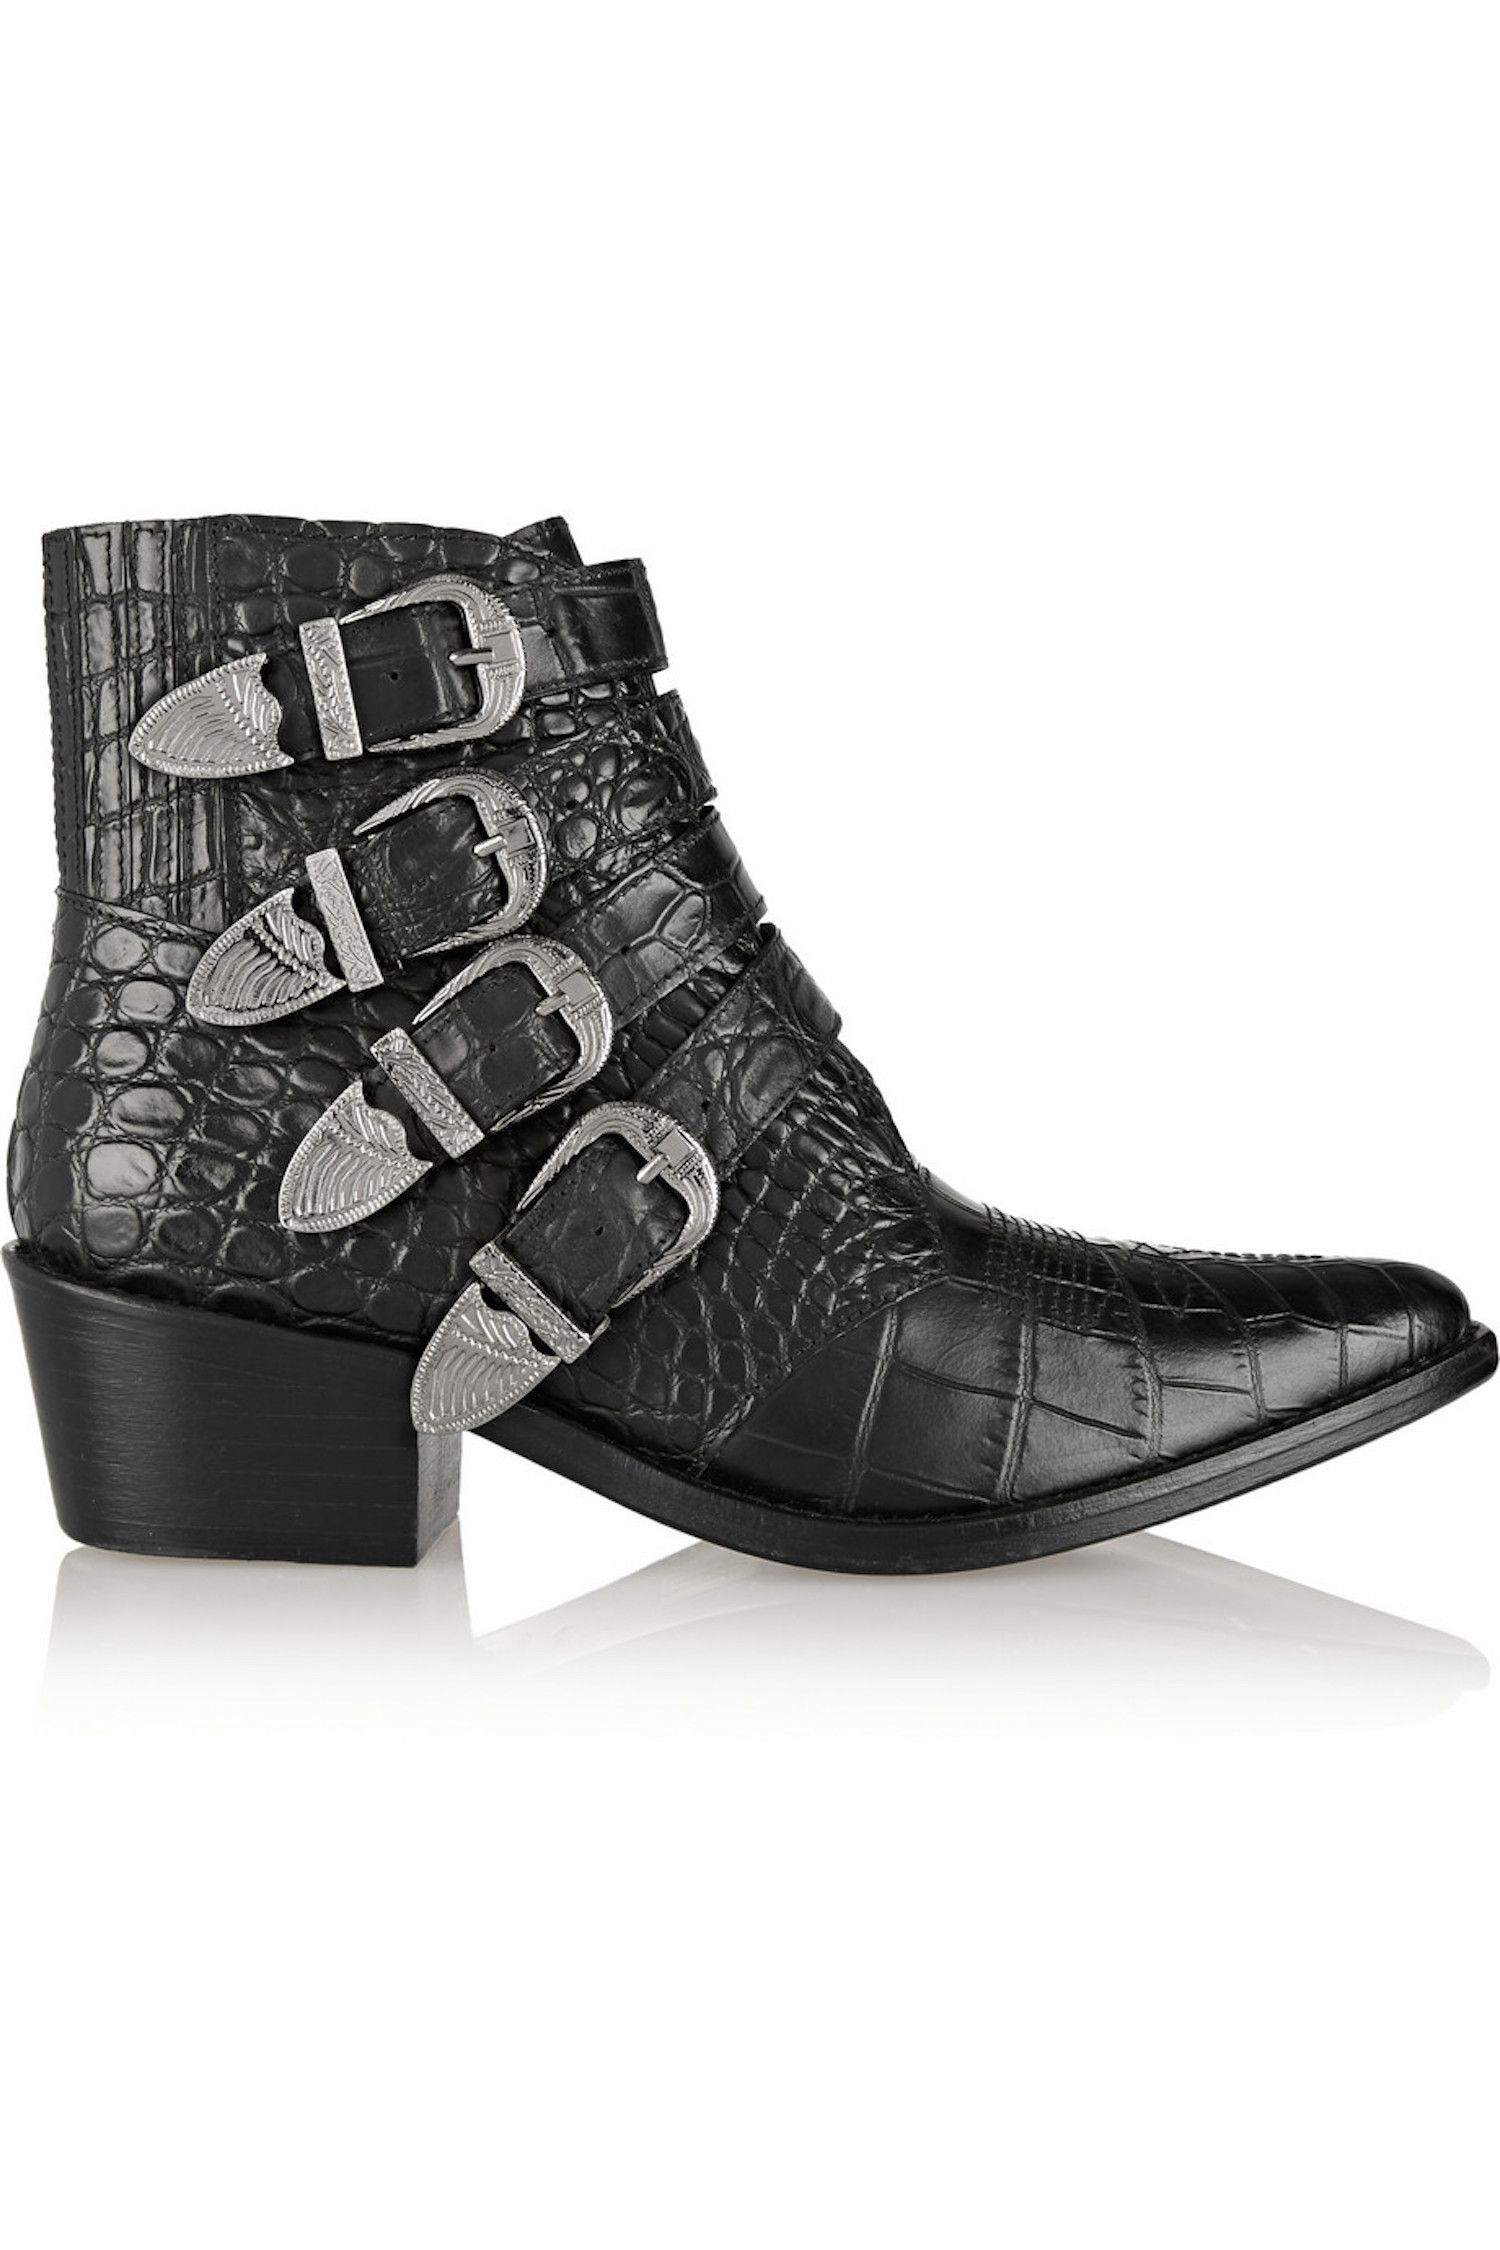 "<p>Saddle up in this rocker version of a Western shoe. The traditional cowboy style is modernized with a faux animal skin texture, Cuban heel and stand-out silver buckles. Yeehaw!</p><p><em>Toga Pulla Croc-Effect Leather Ankle Boots, $445, <strong><a href=""http://www.farfetch.com/shopping/women/toga-pulla-embossed-buckled-boots-item-11140292.aspx?storeid=9003&ffref=lp_57_10_"" target=""_blank"">farfetch.com</a>.</strong></em></p>"